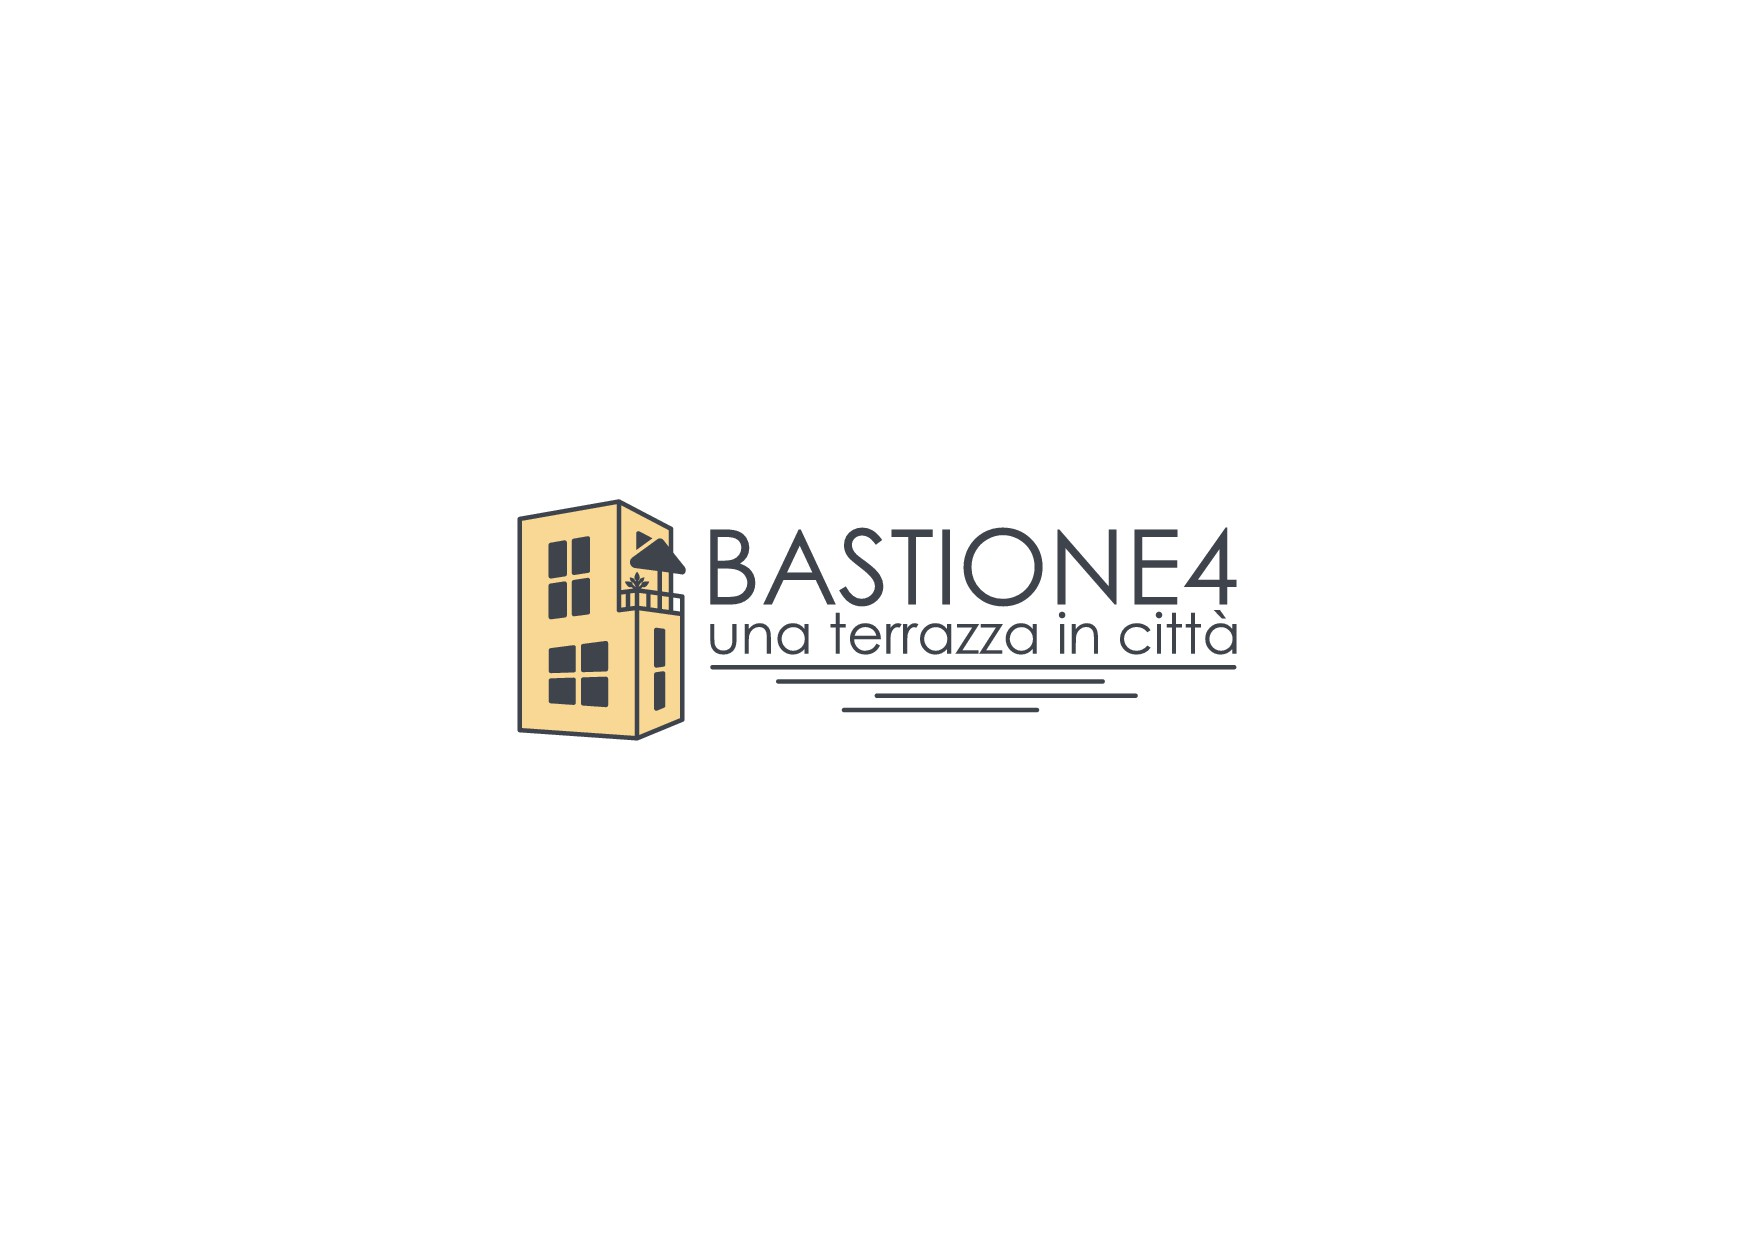 Bastione 4 -  apartment in La Spezia - Liguria - 5 Terre